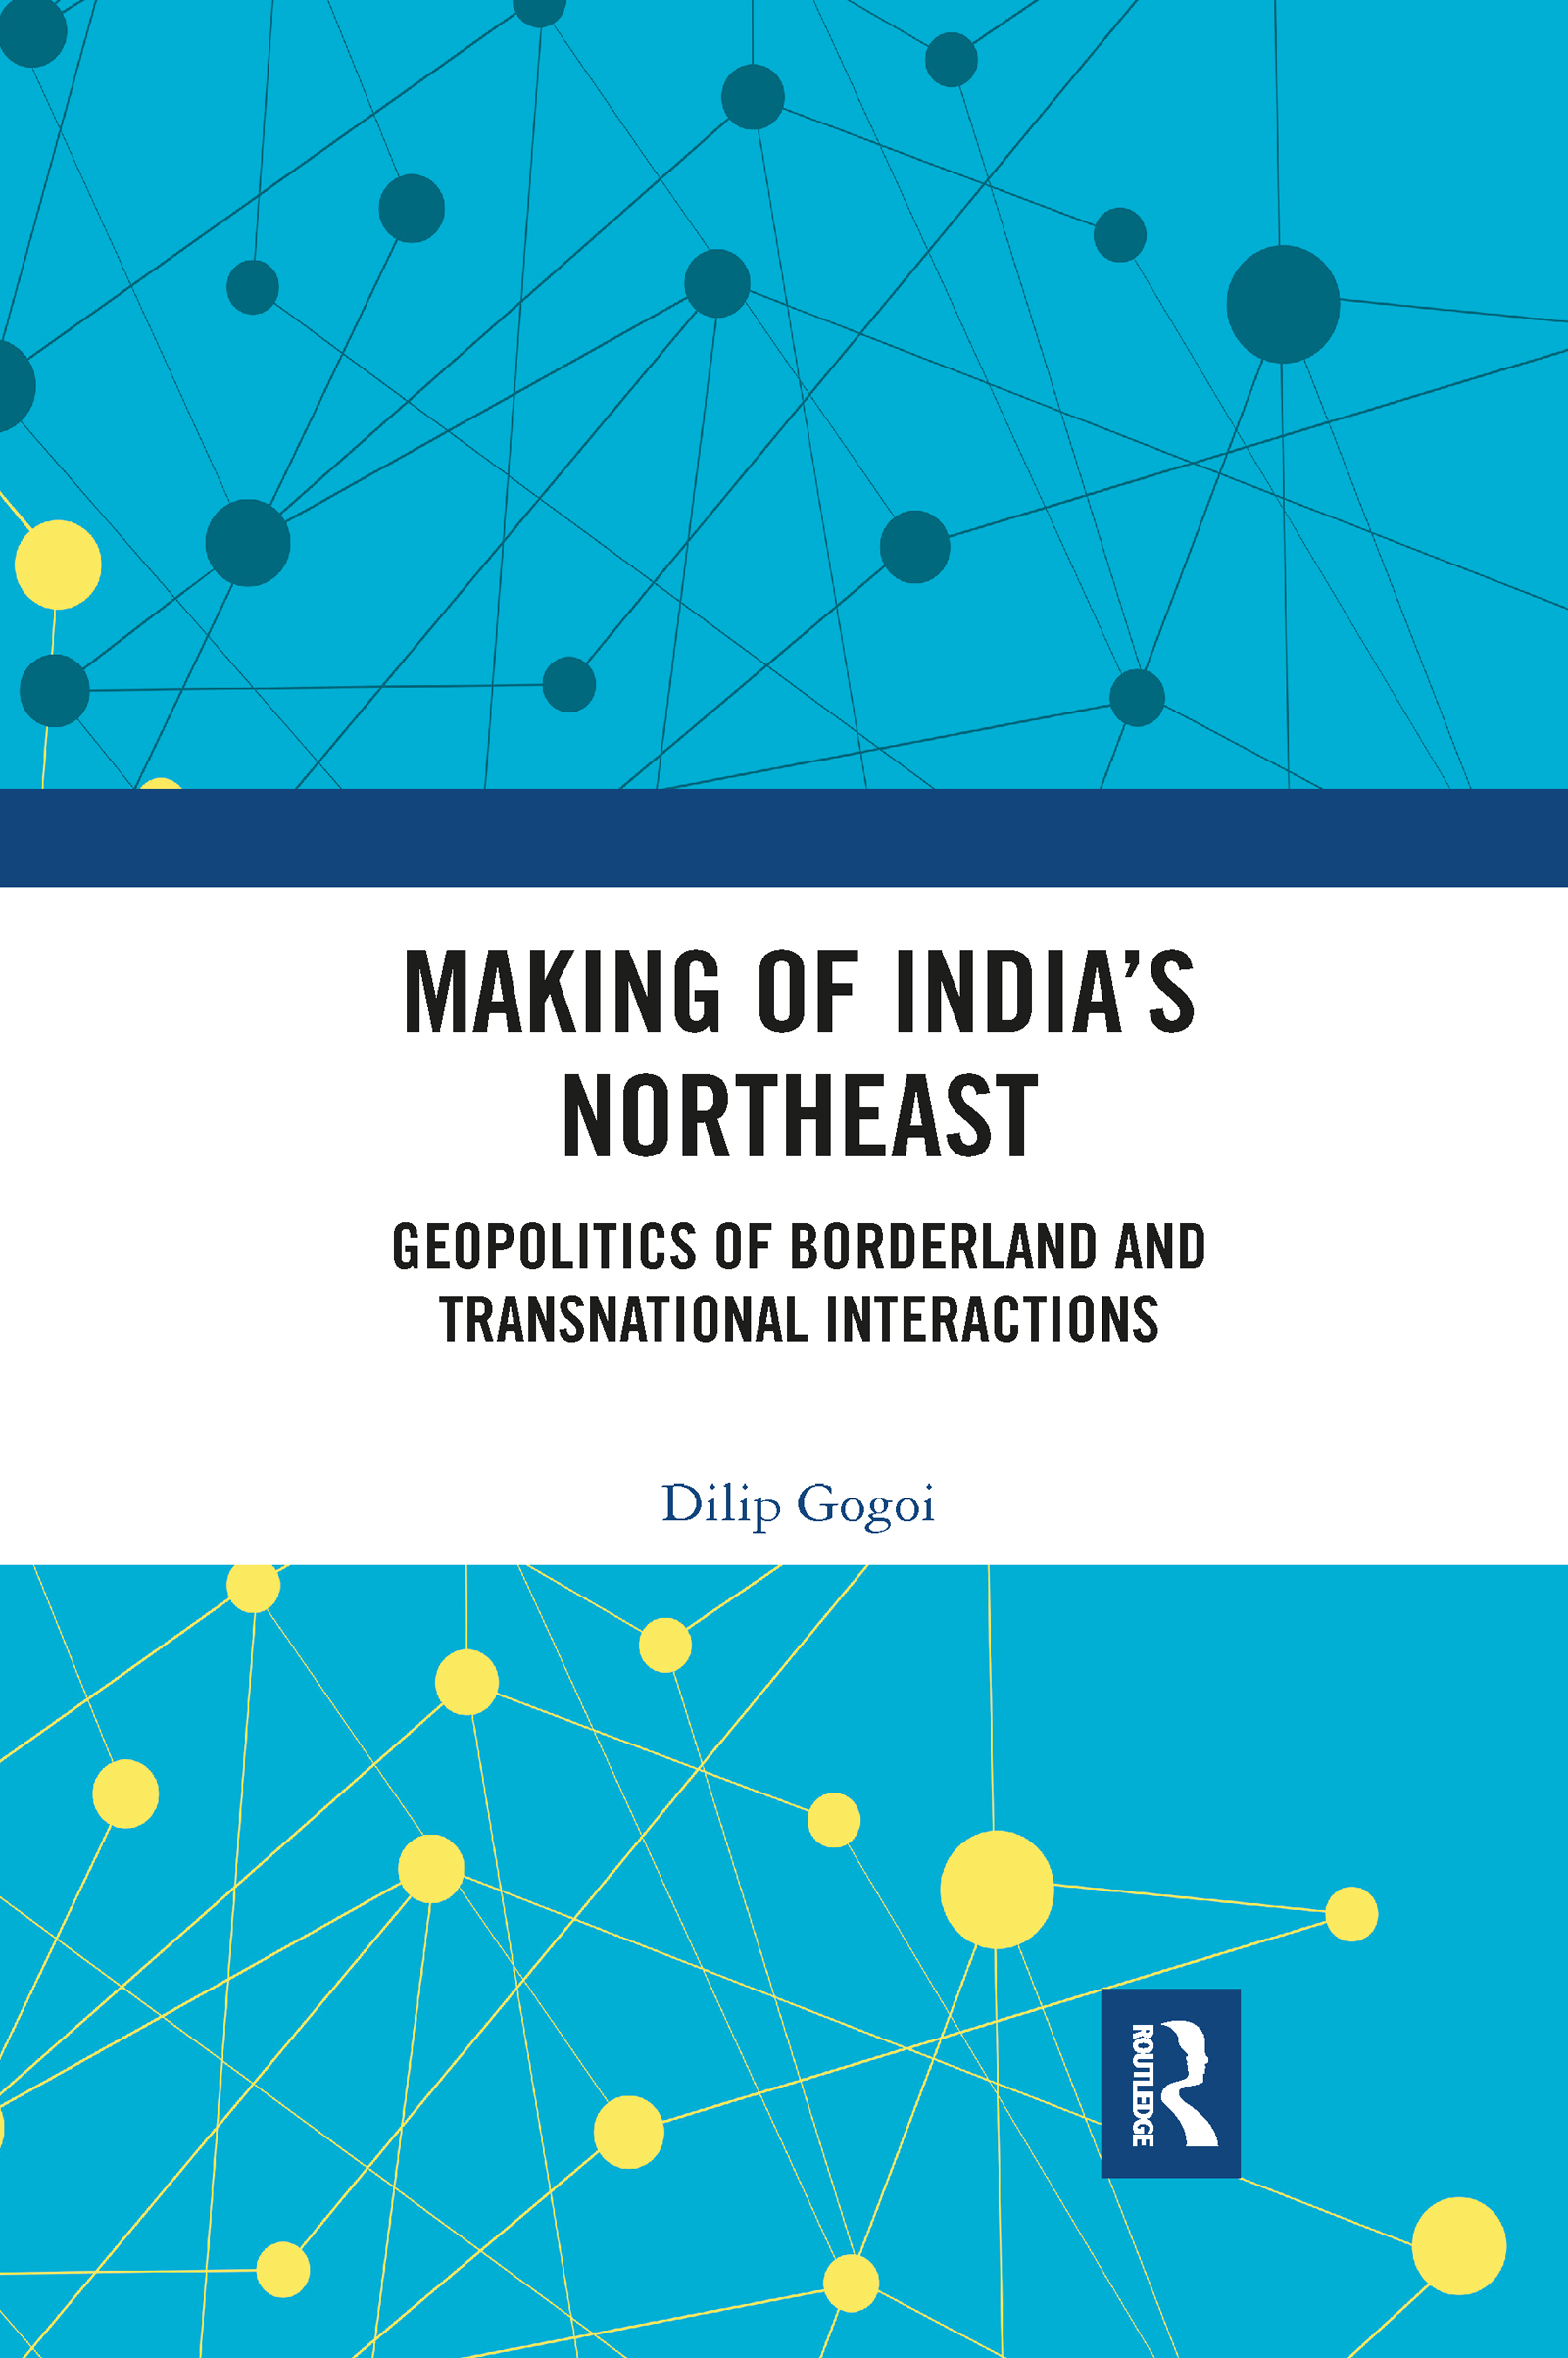 Making of India's Northeast